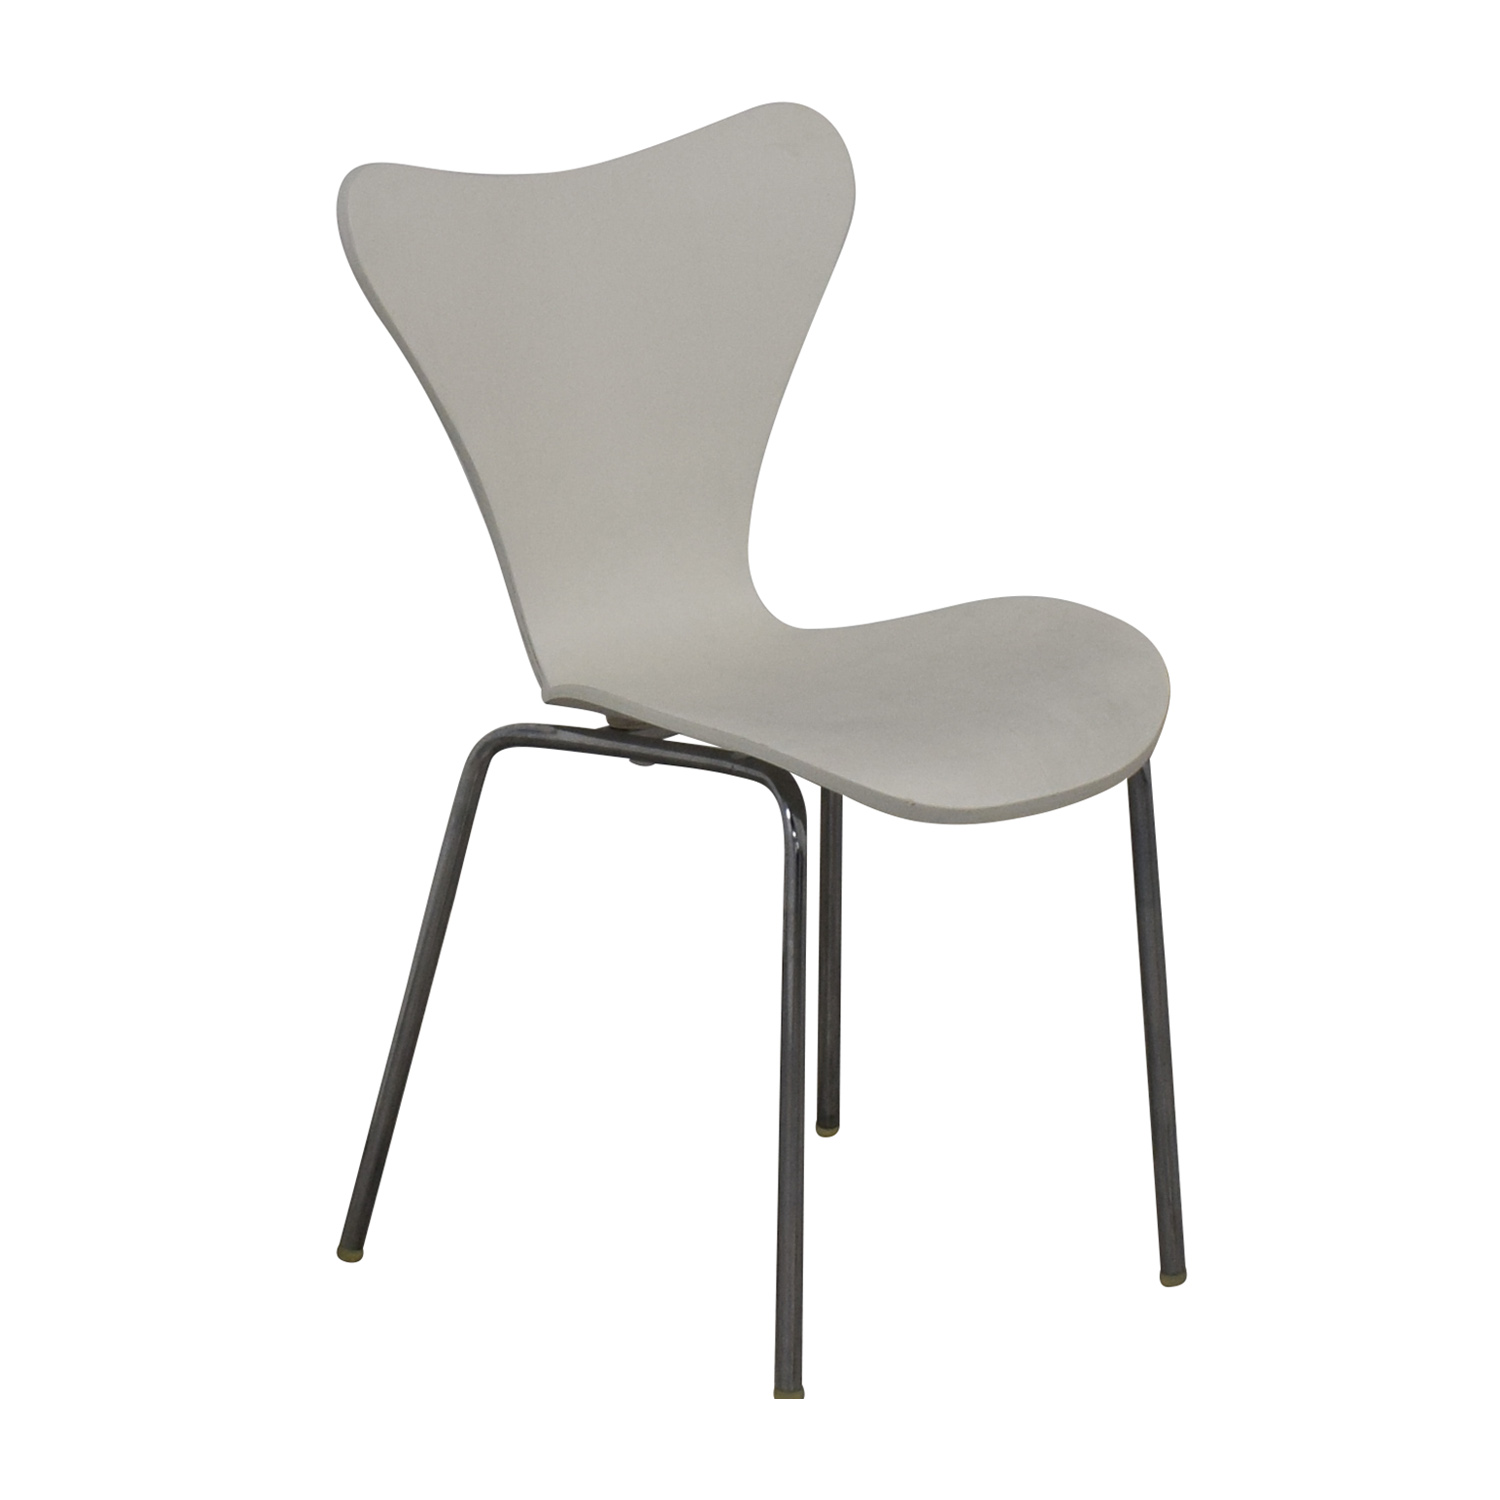 Restoration Hardware Restoration Hardware White and Metal Dining Chair